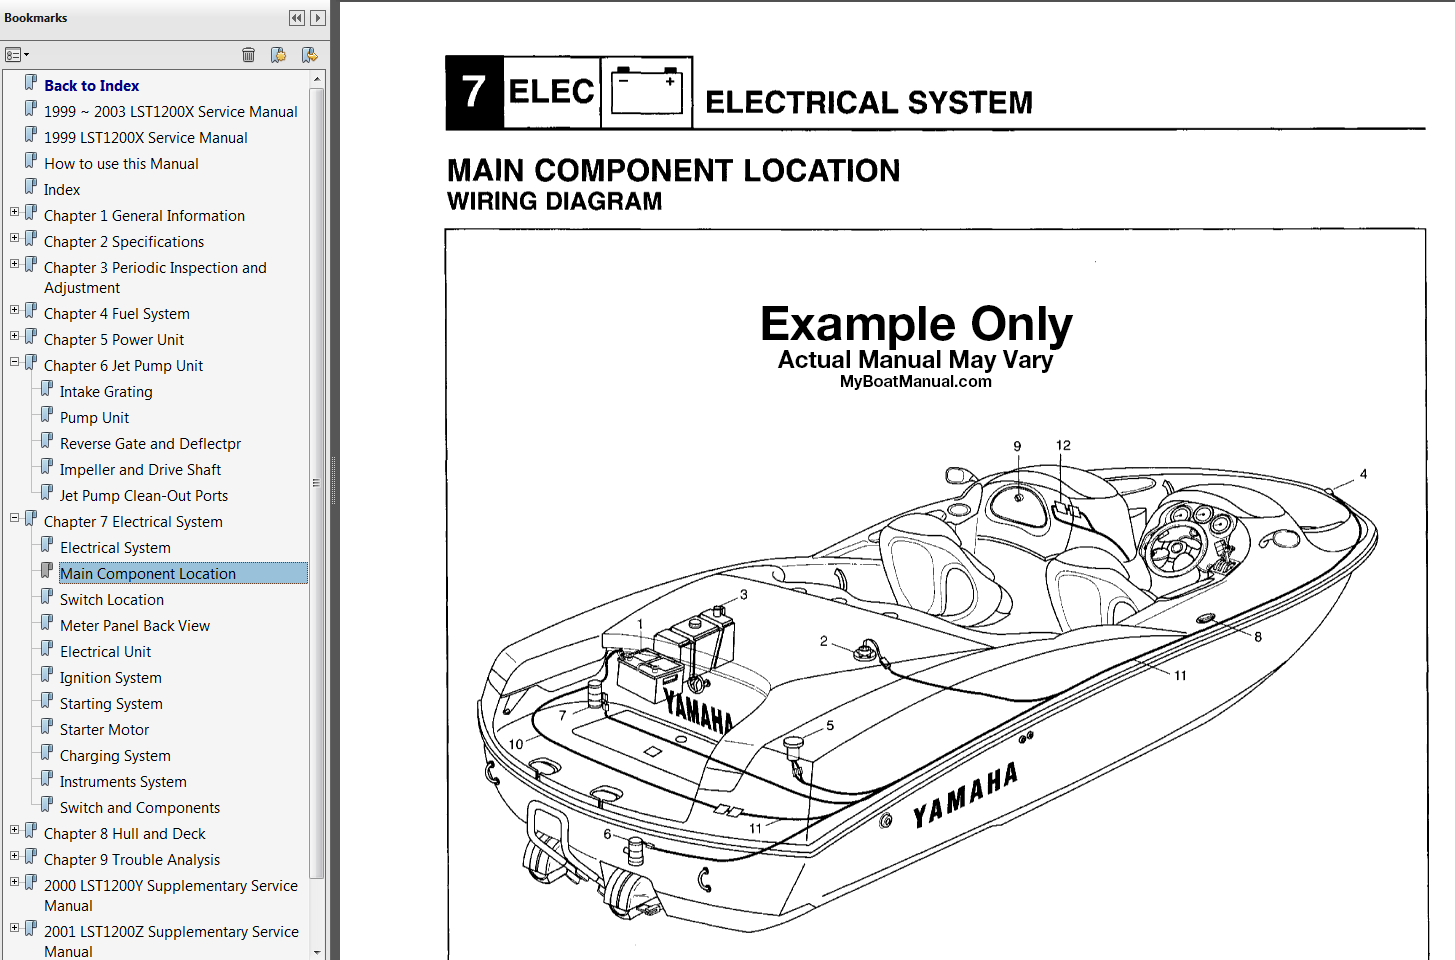 yamaha wiring diagram manual yamaha image wiring boat wiring diagrams manuals boat wiring diagrams online on yamaha wiring diagram manual